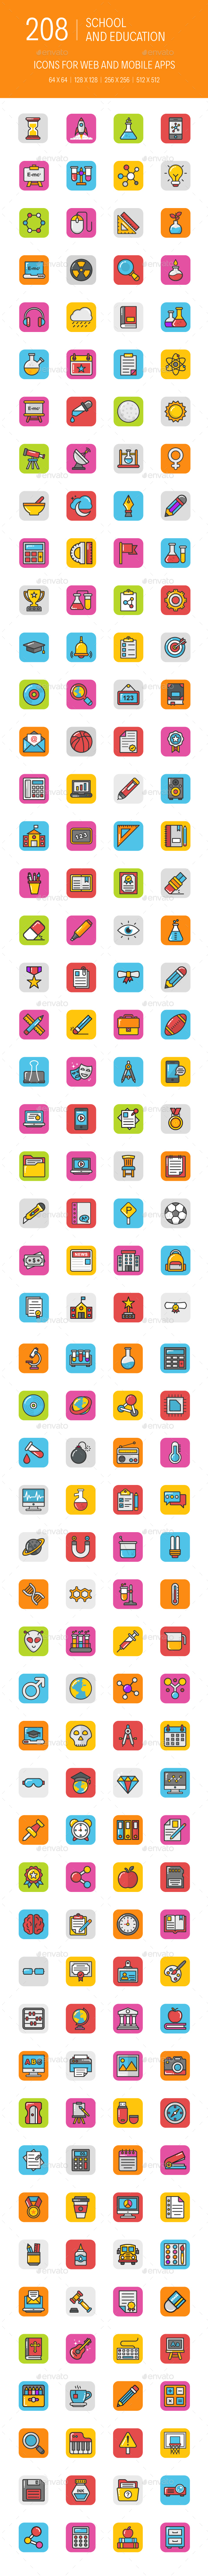 208 Education Icons - Icons